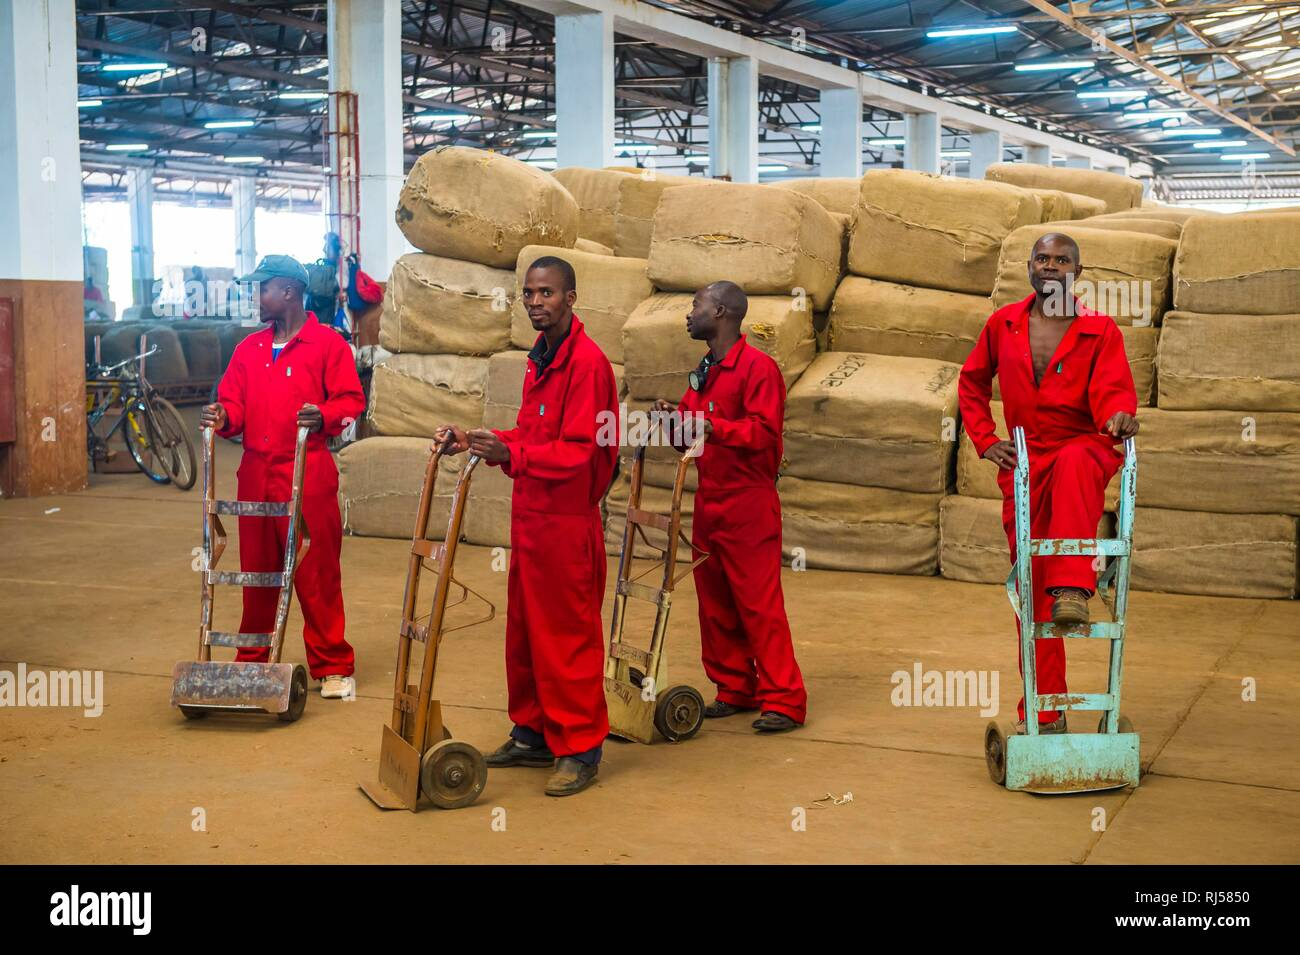 Sacks of dried tobacco leaves in a hall and local workers on a Tobacco auction, Lilongwe, Malawi - Stock Image